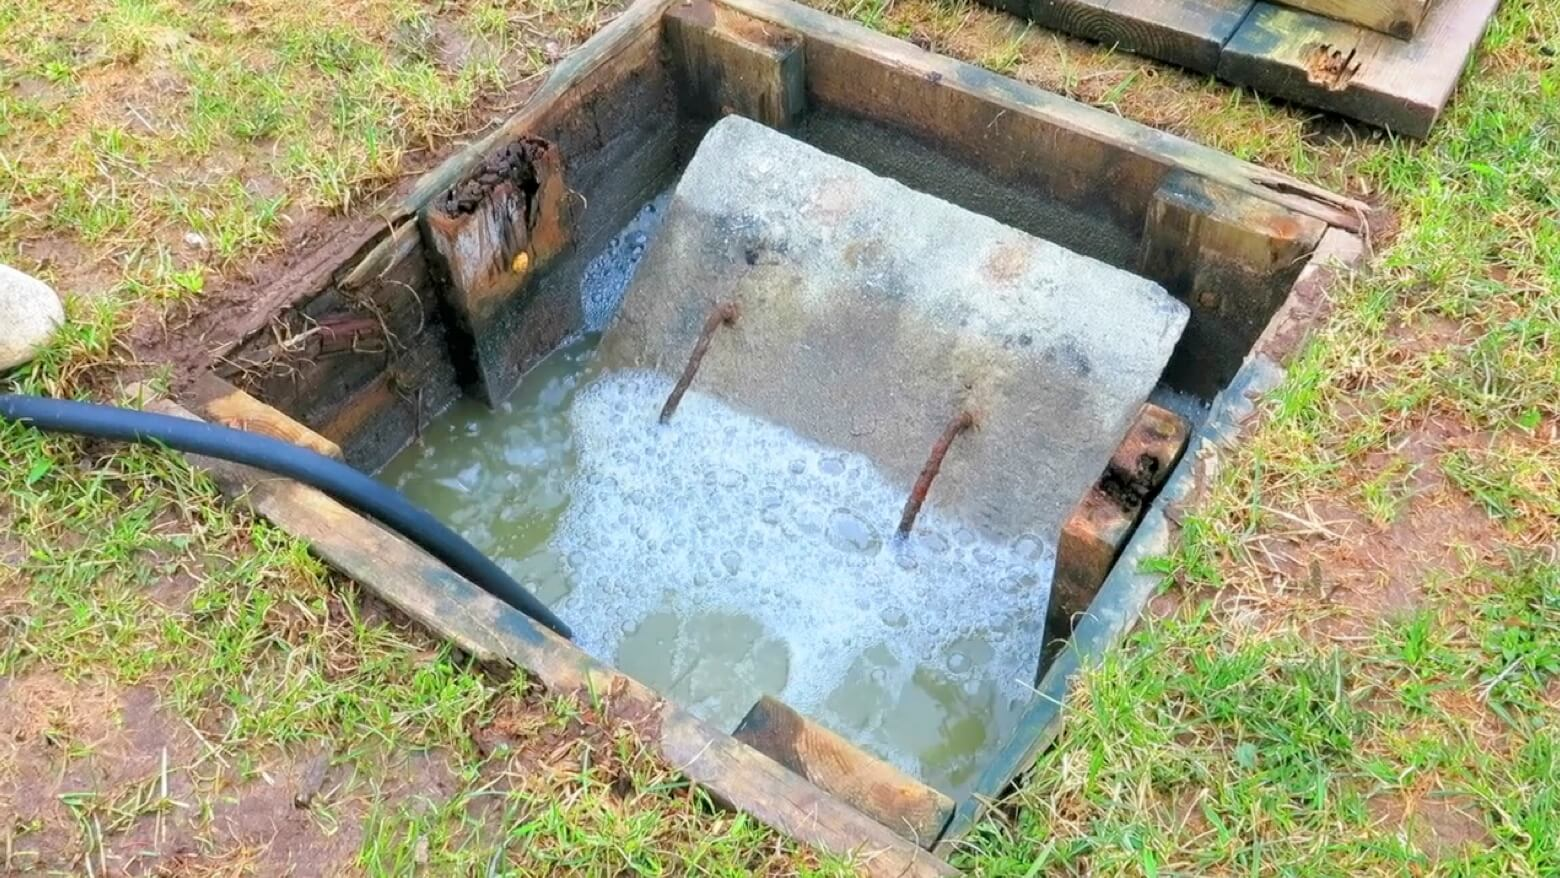 Septic Tank Pumping-Asheville Septic Tank Services, Installation, & Repairs-We offer Septic Service & Repairs, Septic Tank Installations, Septic Tank Cleaning, Commercial, Septic System, Drain Cleaning, Line Snaking, Portable Toilet, Grease Trap Pumping & Cleaning, Septic Tank Pumping, Sewage Pump, Sewer Line Repair, Septic Tank Replacement, Septic Maintenance, Sewer Line Replacement, Porta Potty Rentals